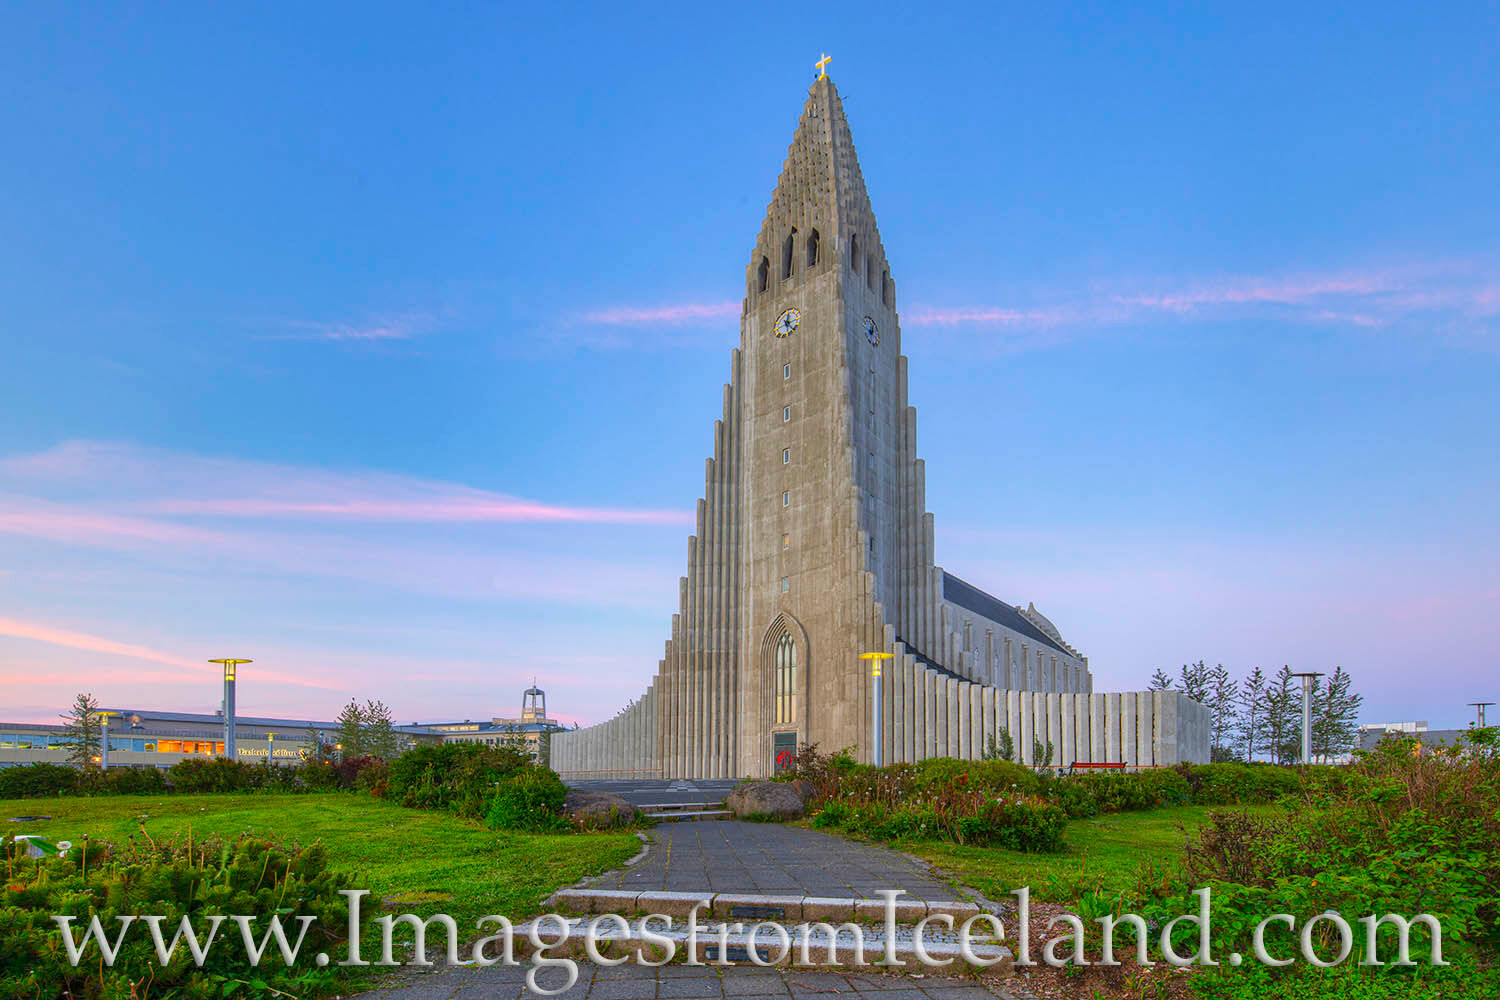 The tallest church in all of Iceland, Hallgrímskirkja, rises 244' tall and was completed in 1986. It is an icon in the center...